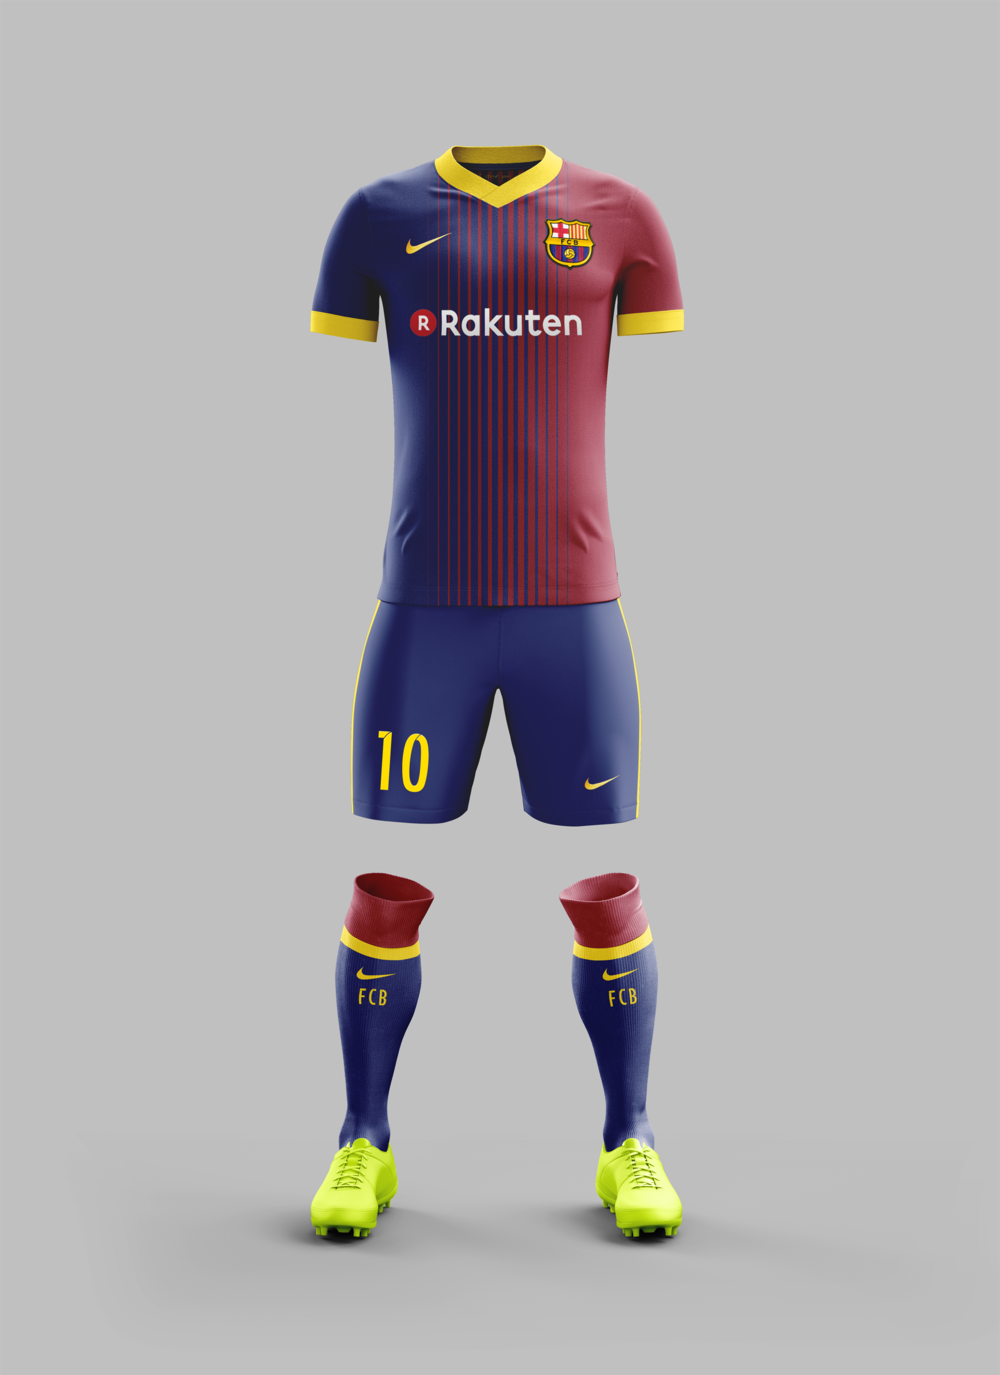 6184e9acb7c This season's FC Barcelona home shirt is reminiscent of both football  jerseys that the team wore ten years ago in 2009 and twenty years ago in  1999.